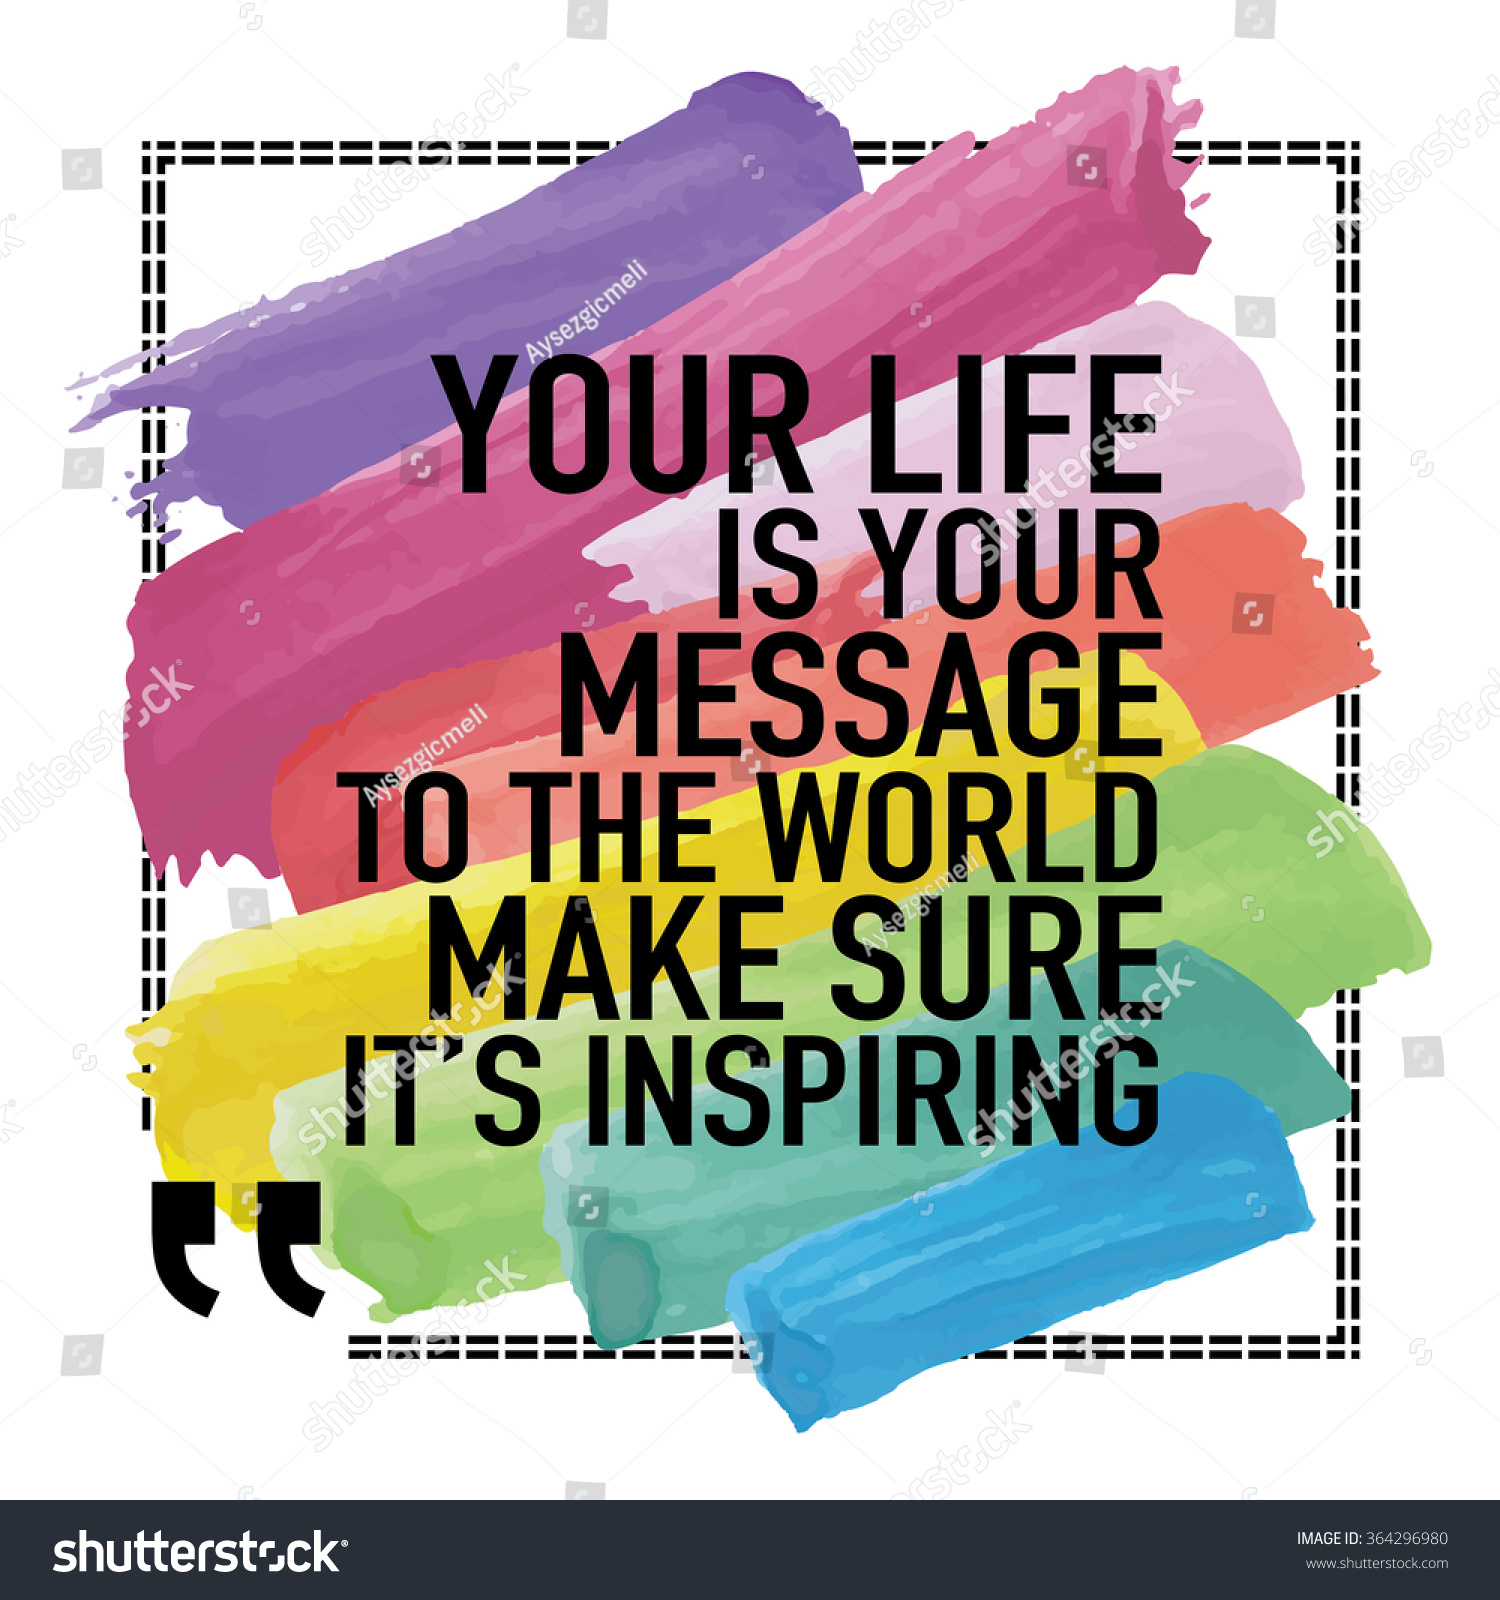 Motivational Inspirational Quotes: Inspirational Quote Poster Your Life Your Stock Vector